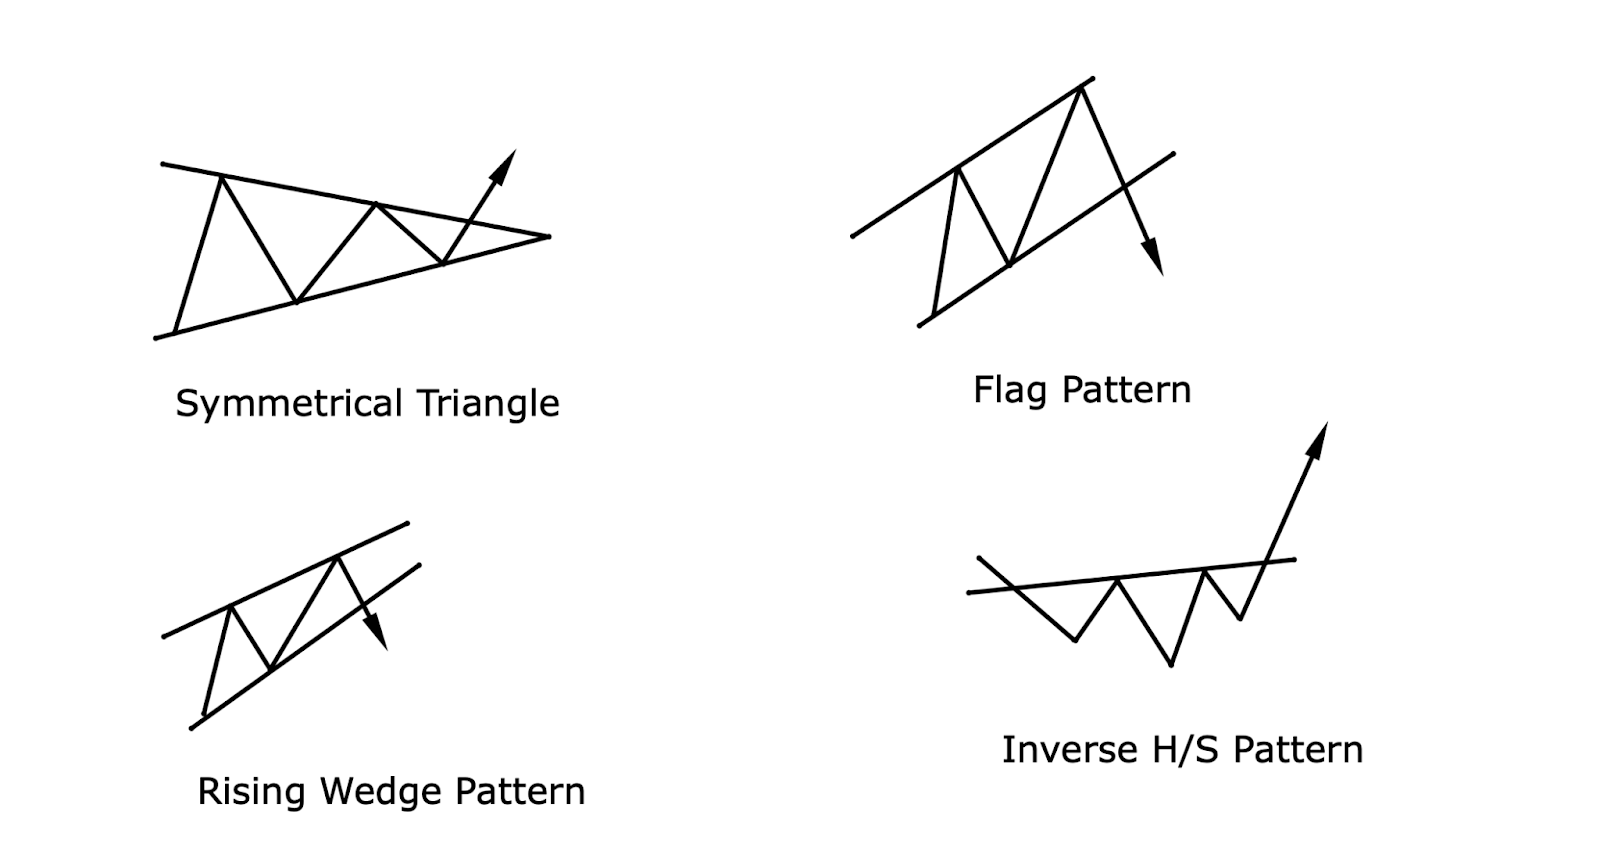 Examples of price action patterns.